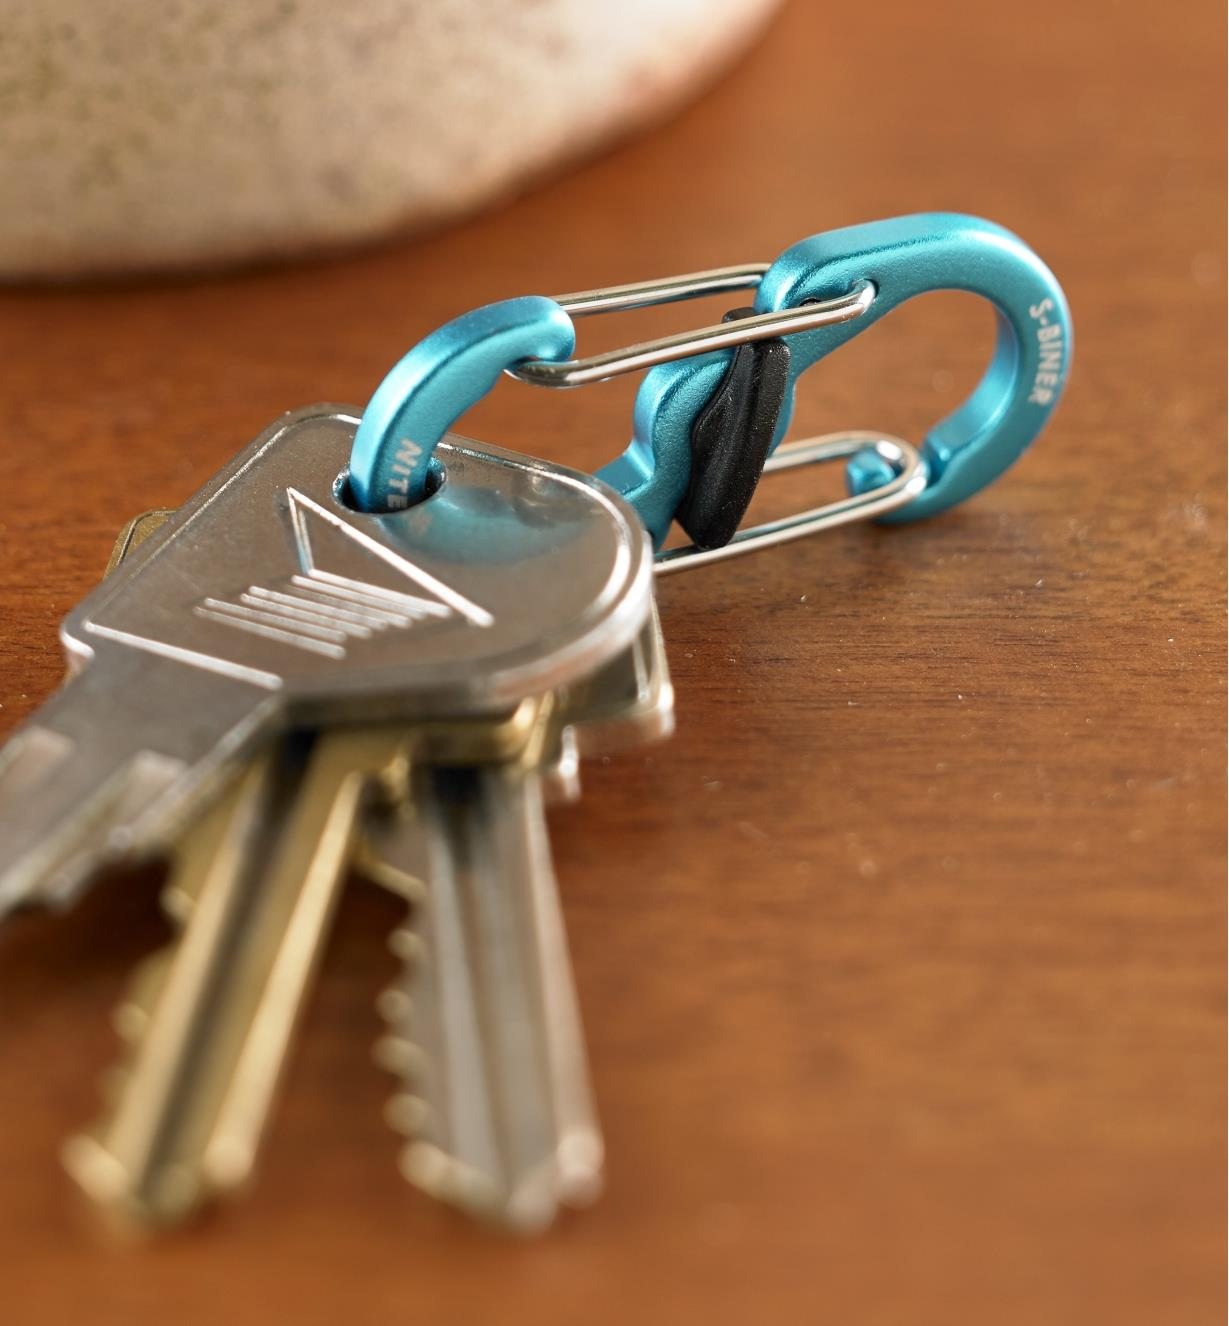 A close view of three keys on an S-Biner MicroLock aluminum key carrier